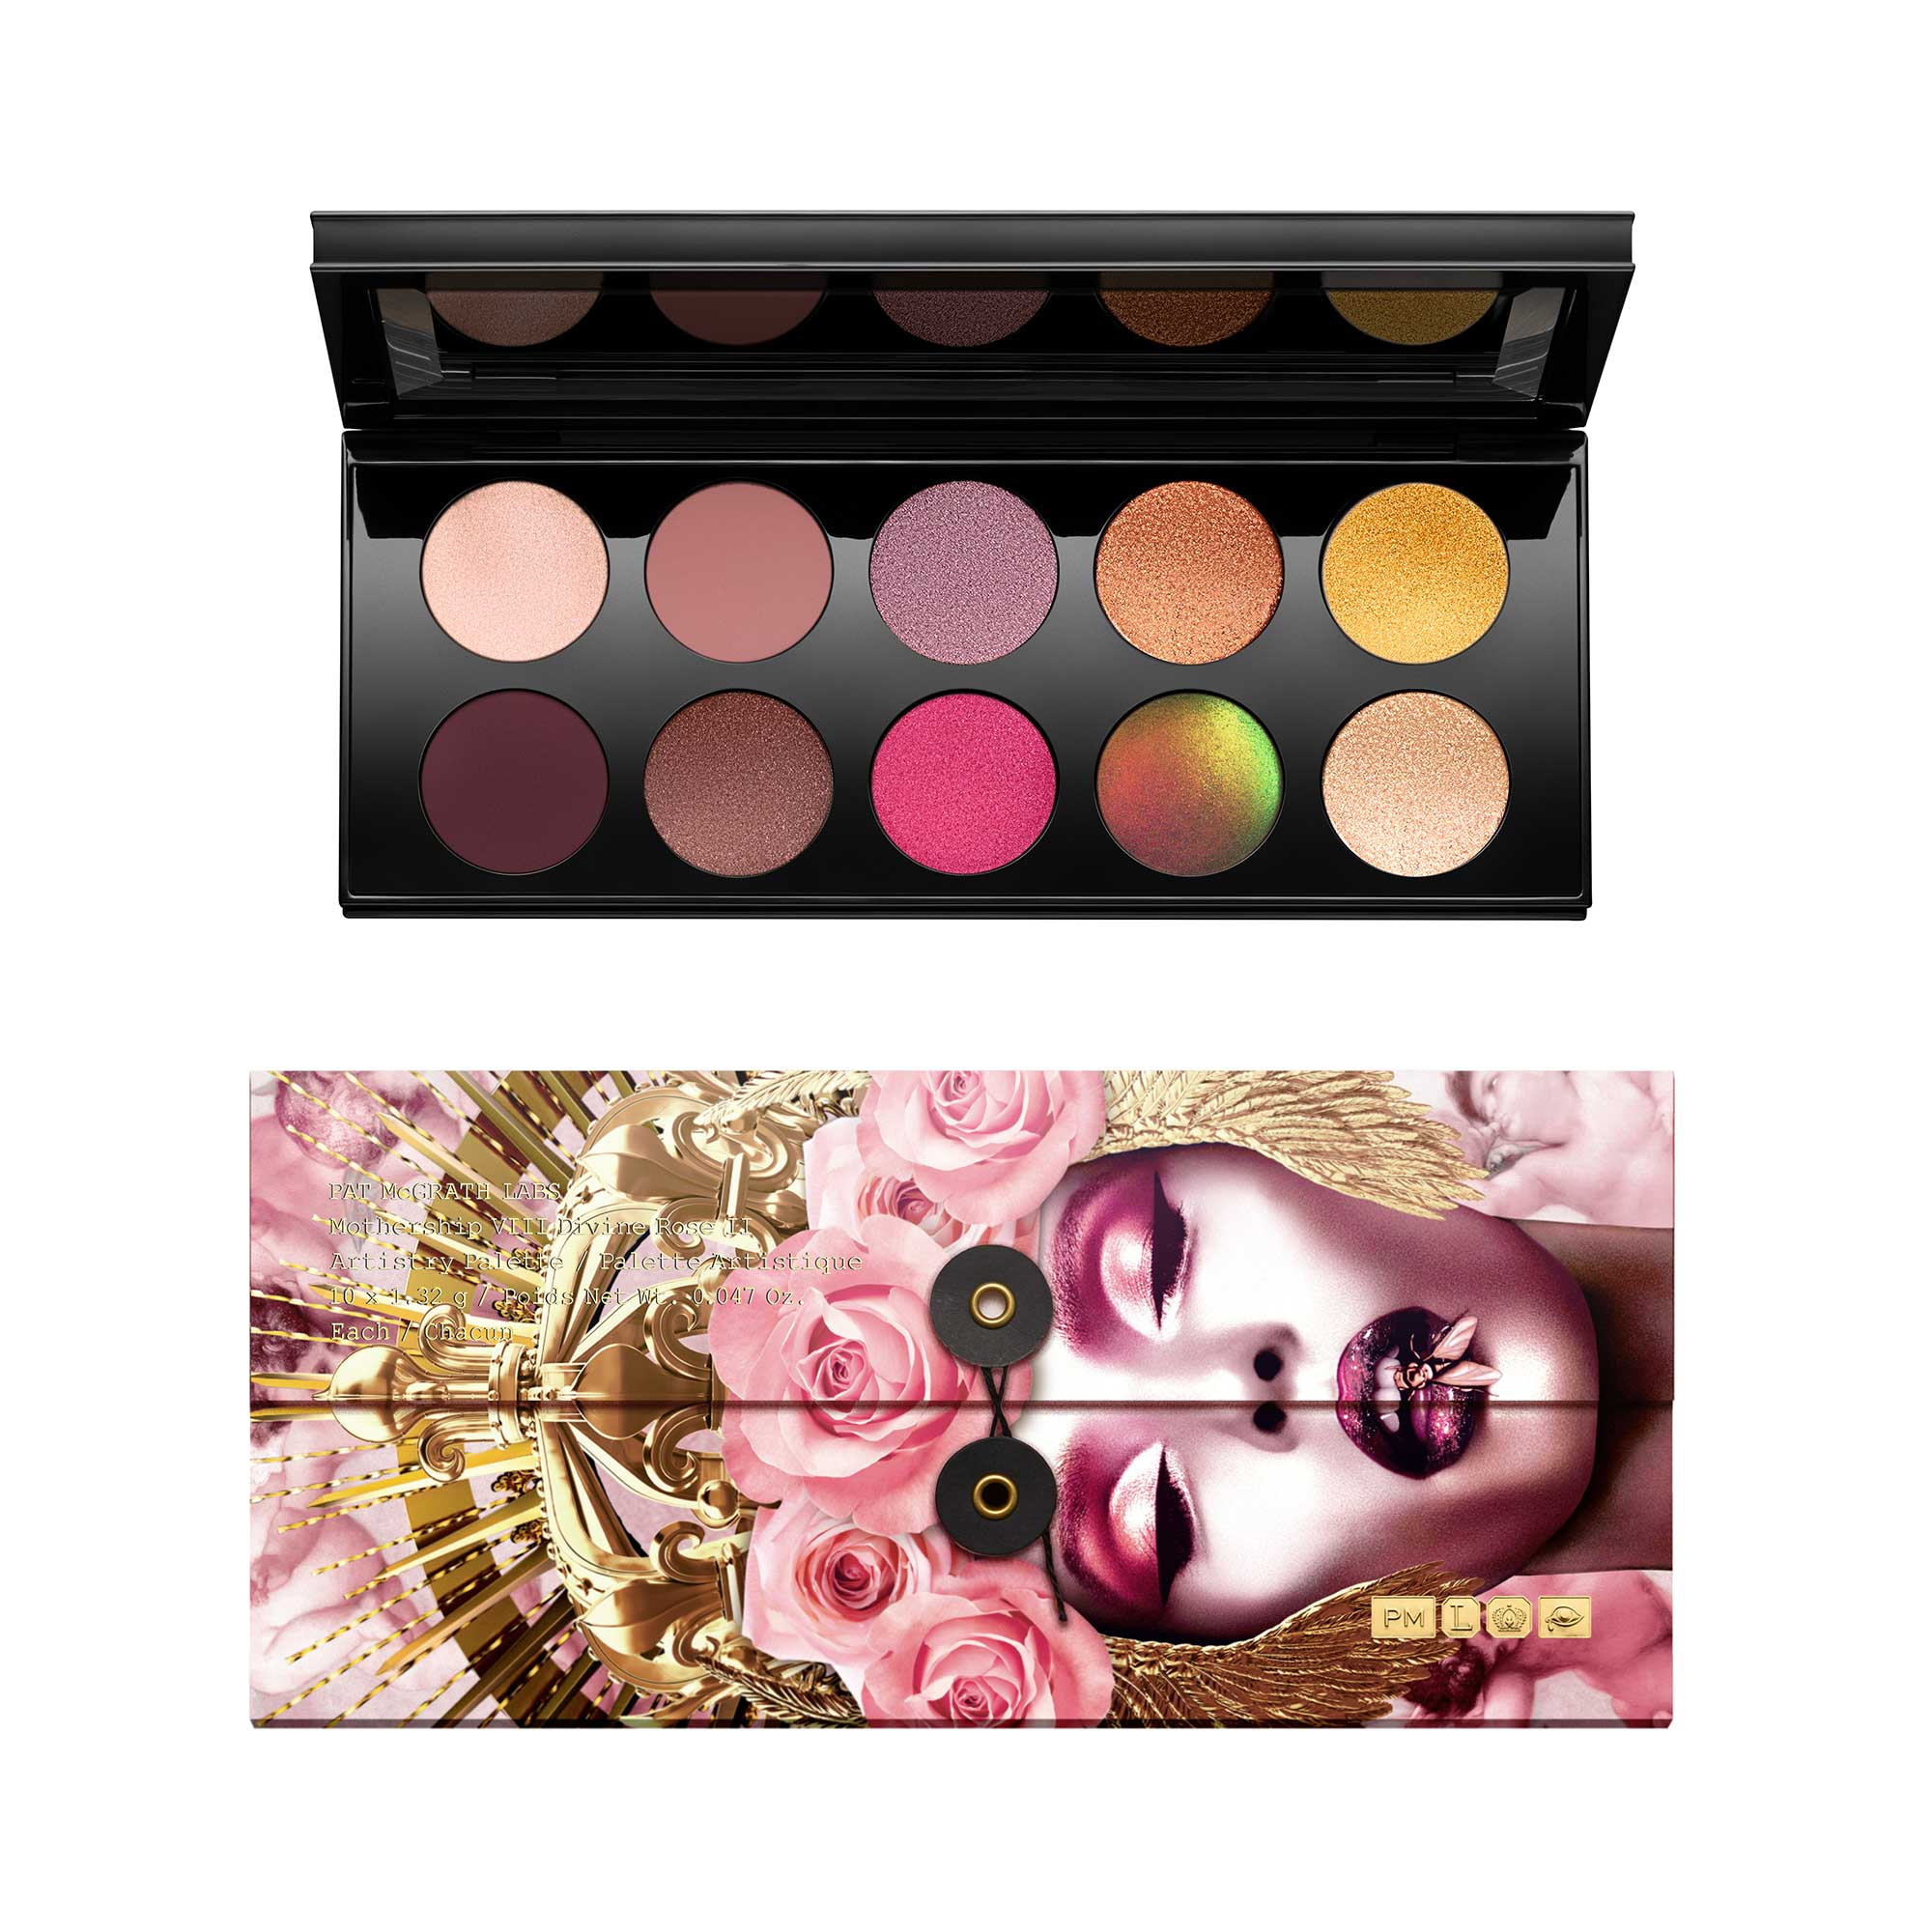 Pat McGrath Divine Rose palette